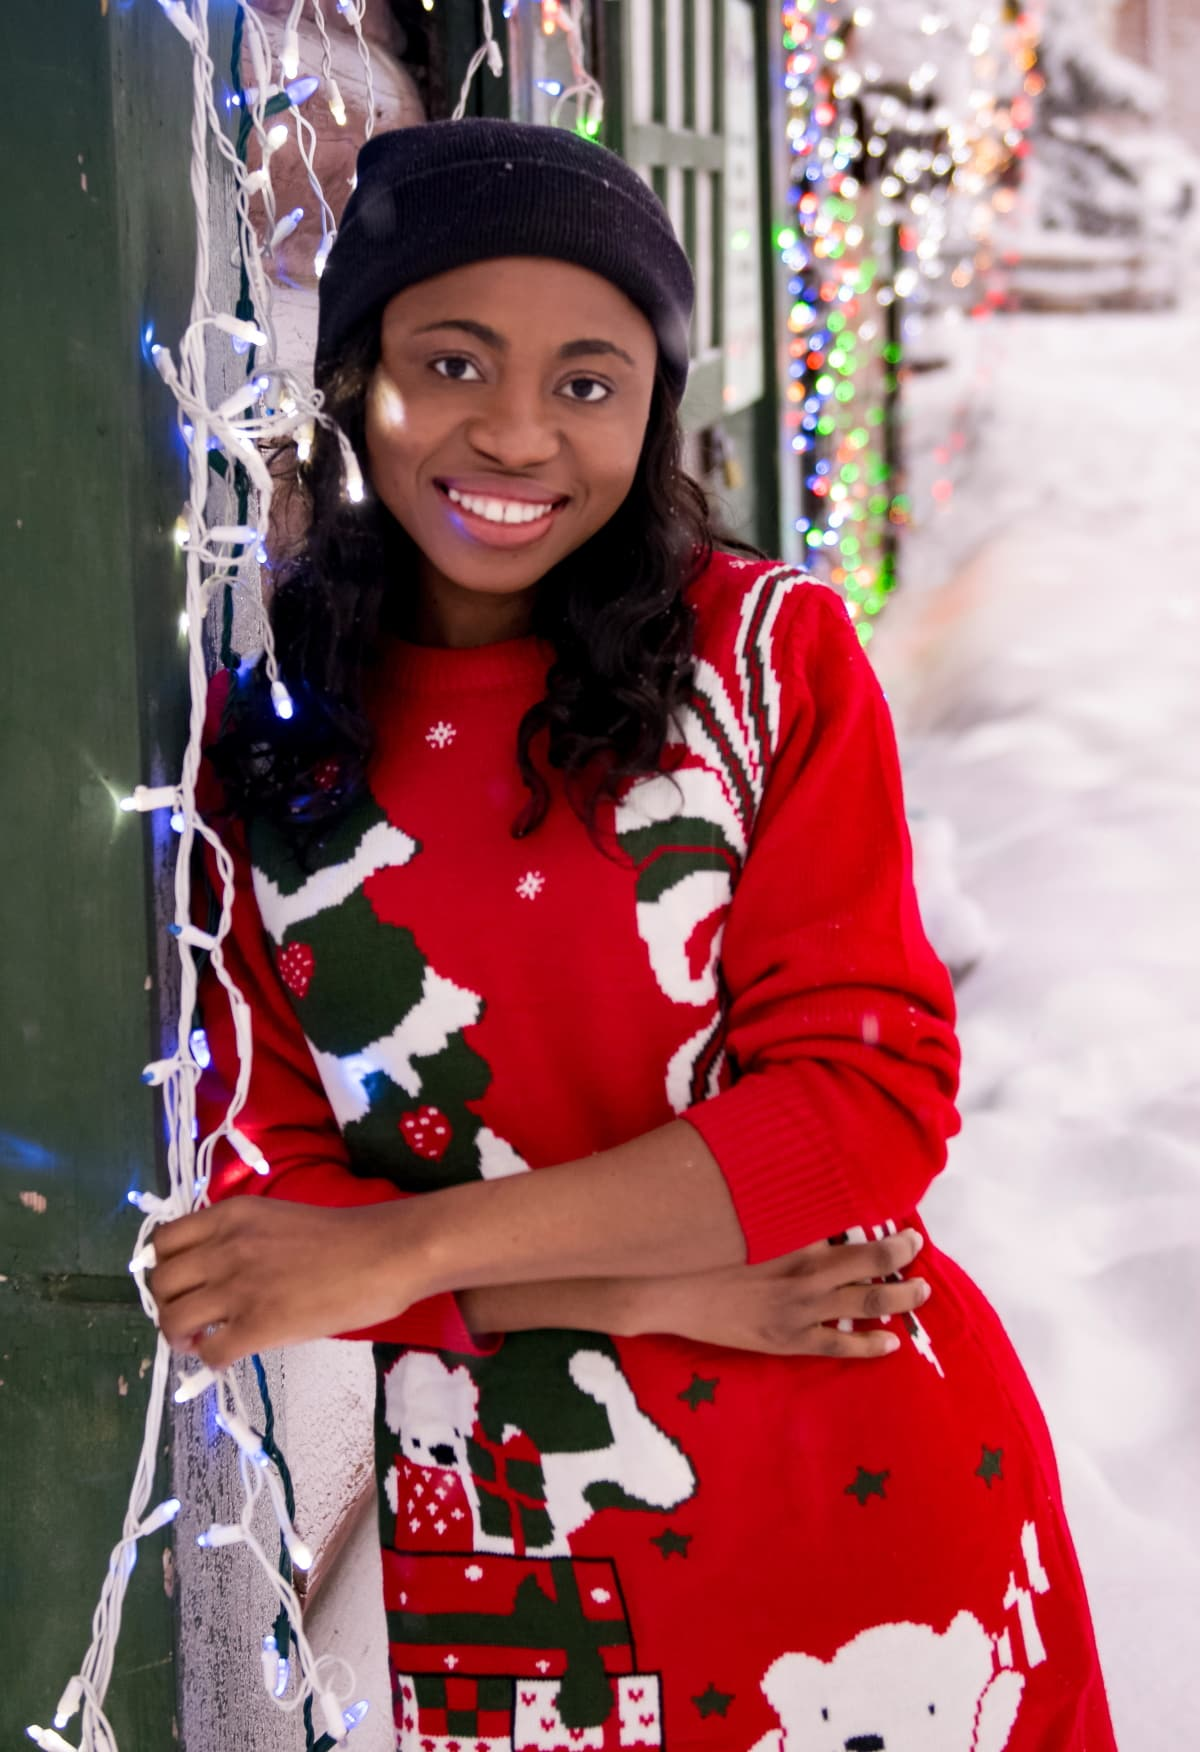 The ultimate roundup of the best Christmas sweater dresses under $40 to wear this year. Keep reading to discover the most-wanted styles of the season. #uglychristmassweater #xmassweater #sweaterdress